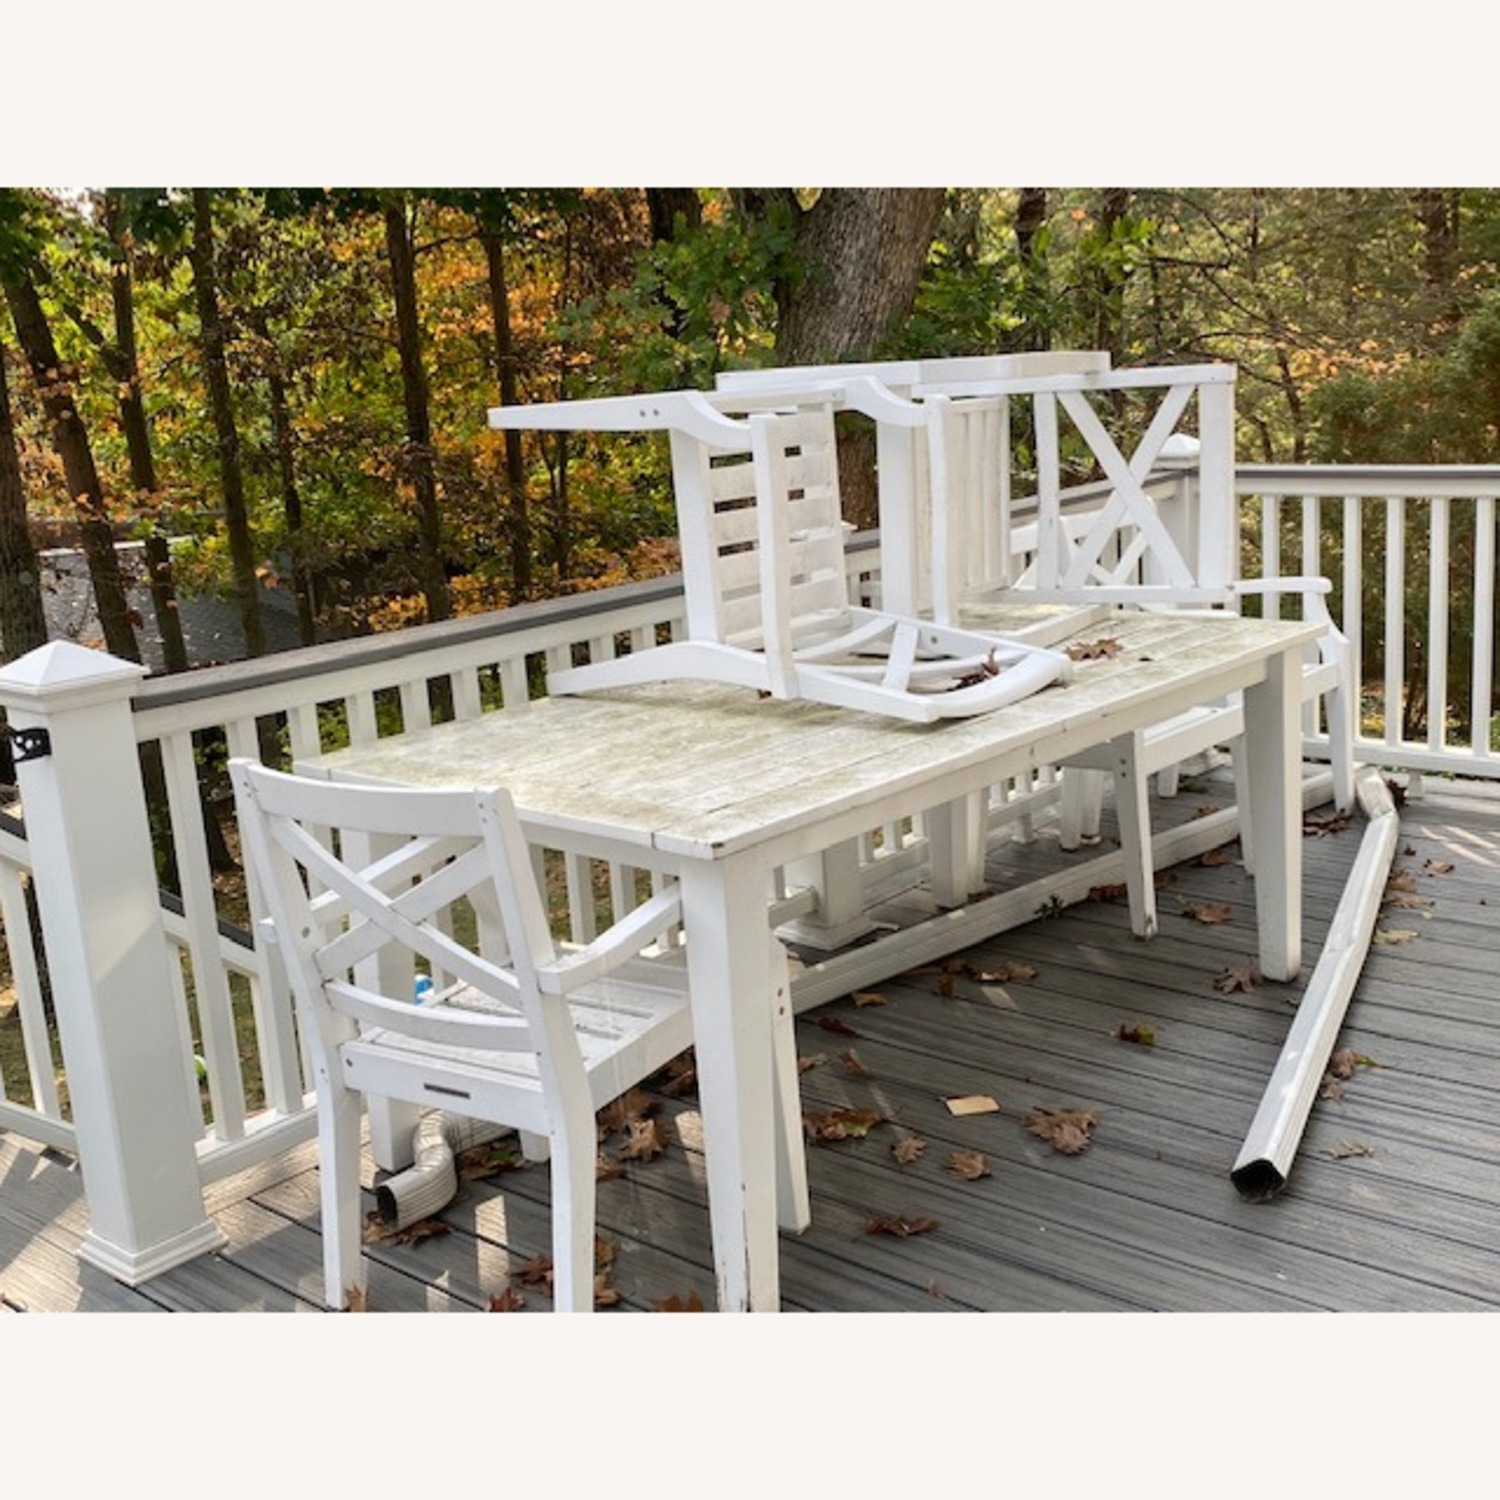 Pottery Barn Outdoor Furniture - image-3